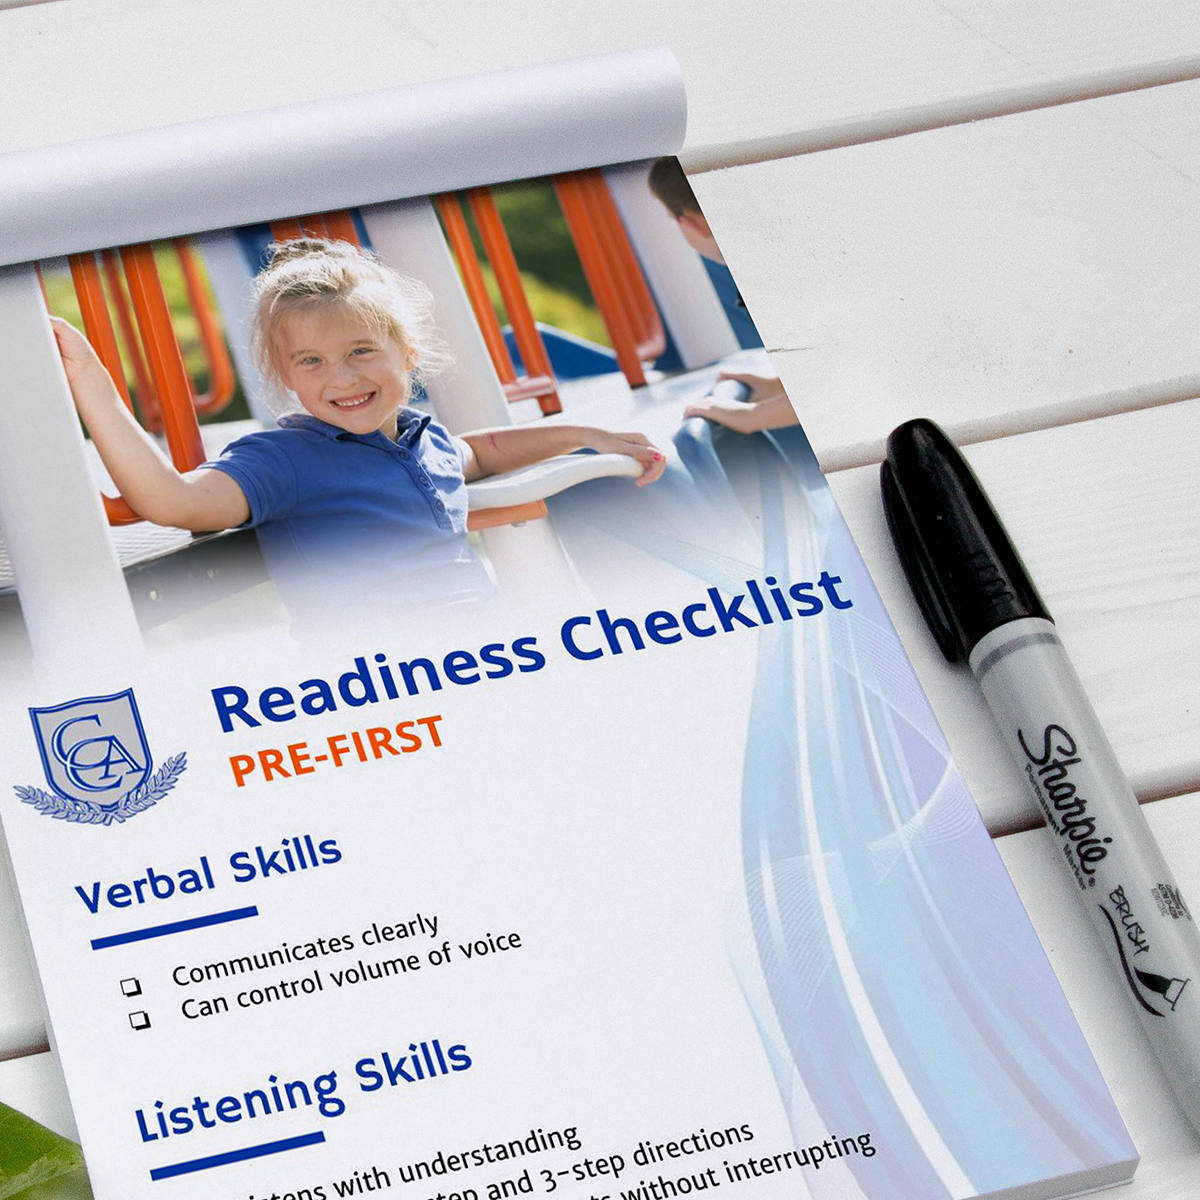 Readiness Checklist Form